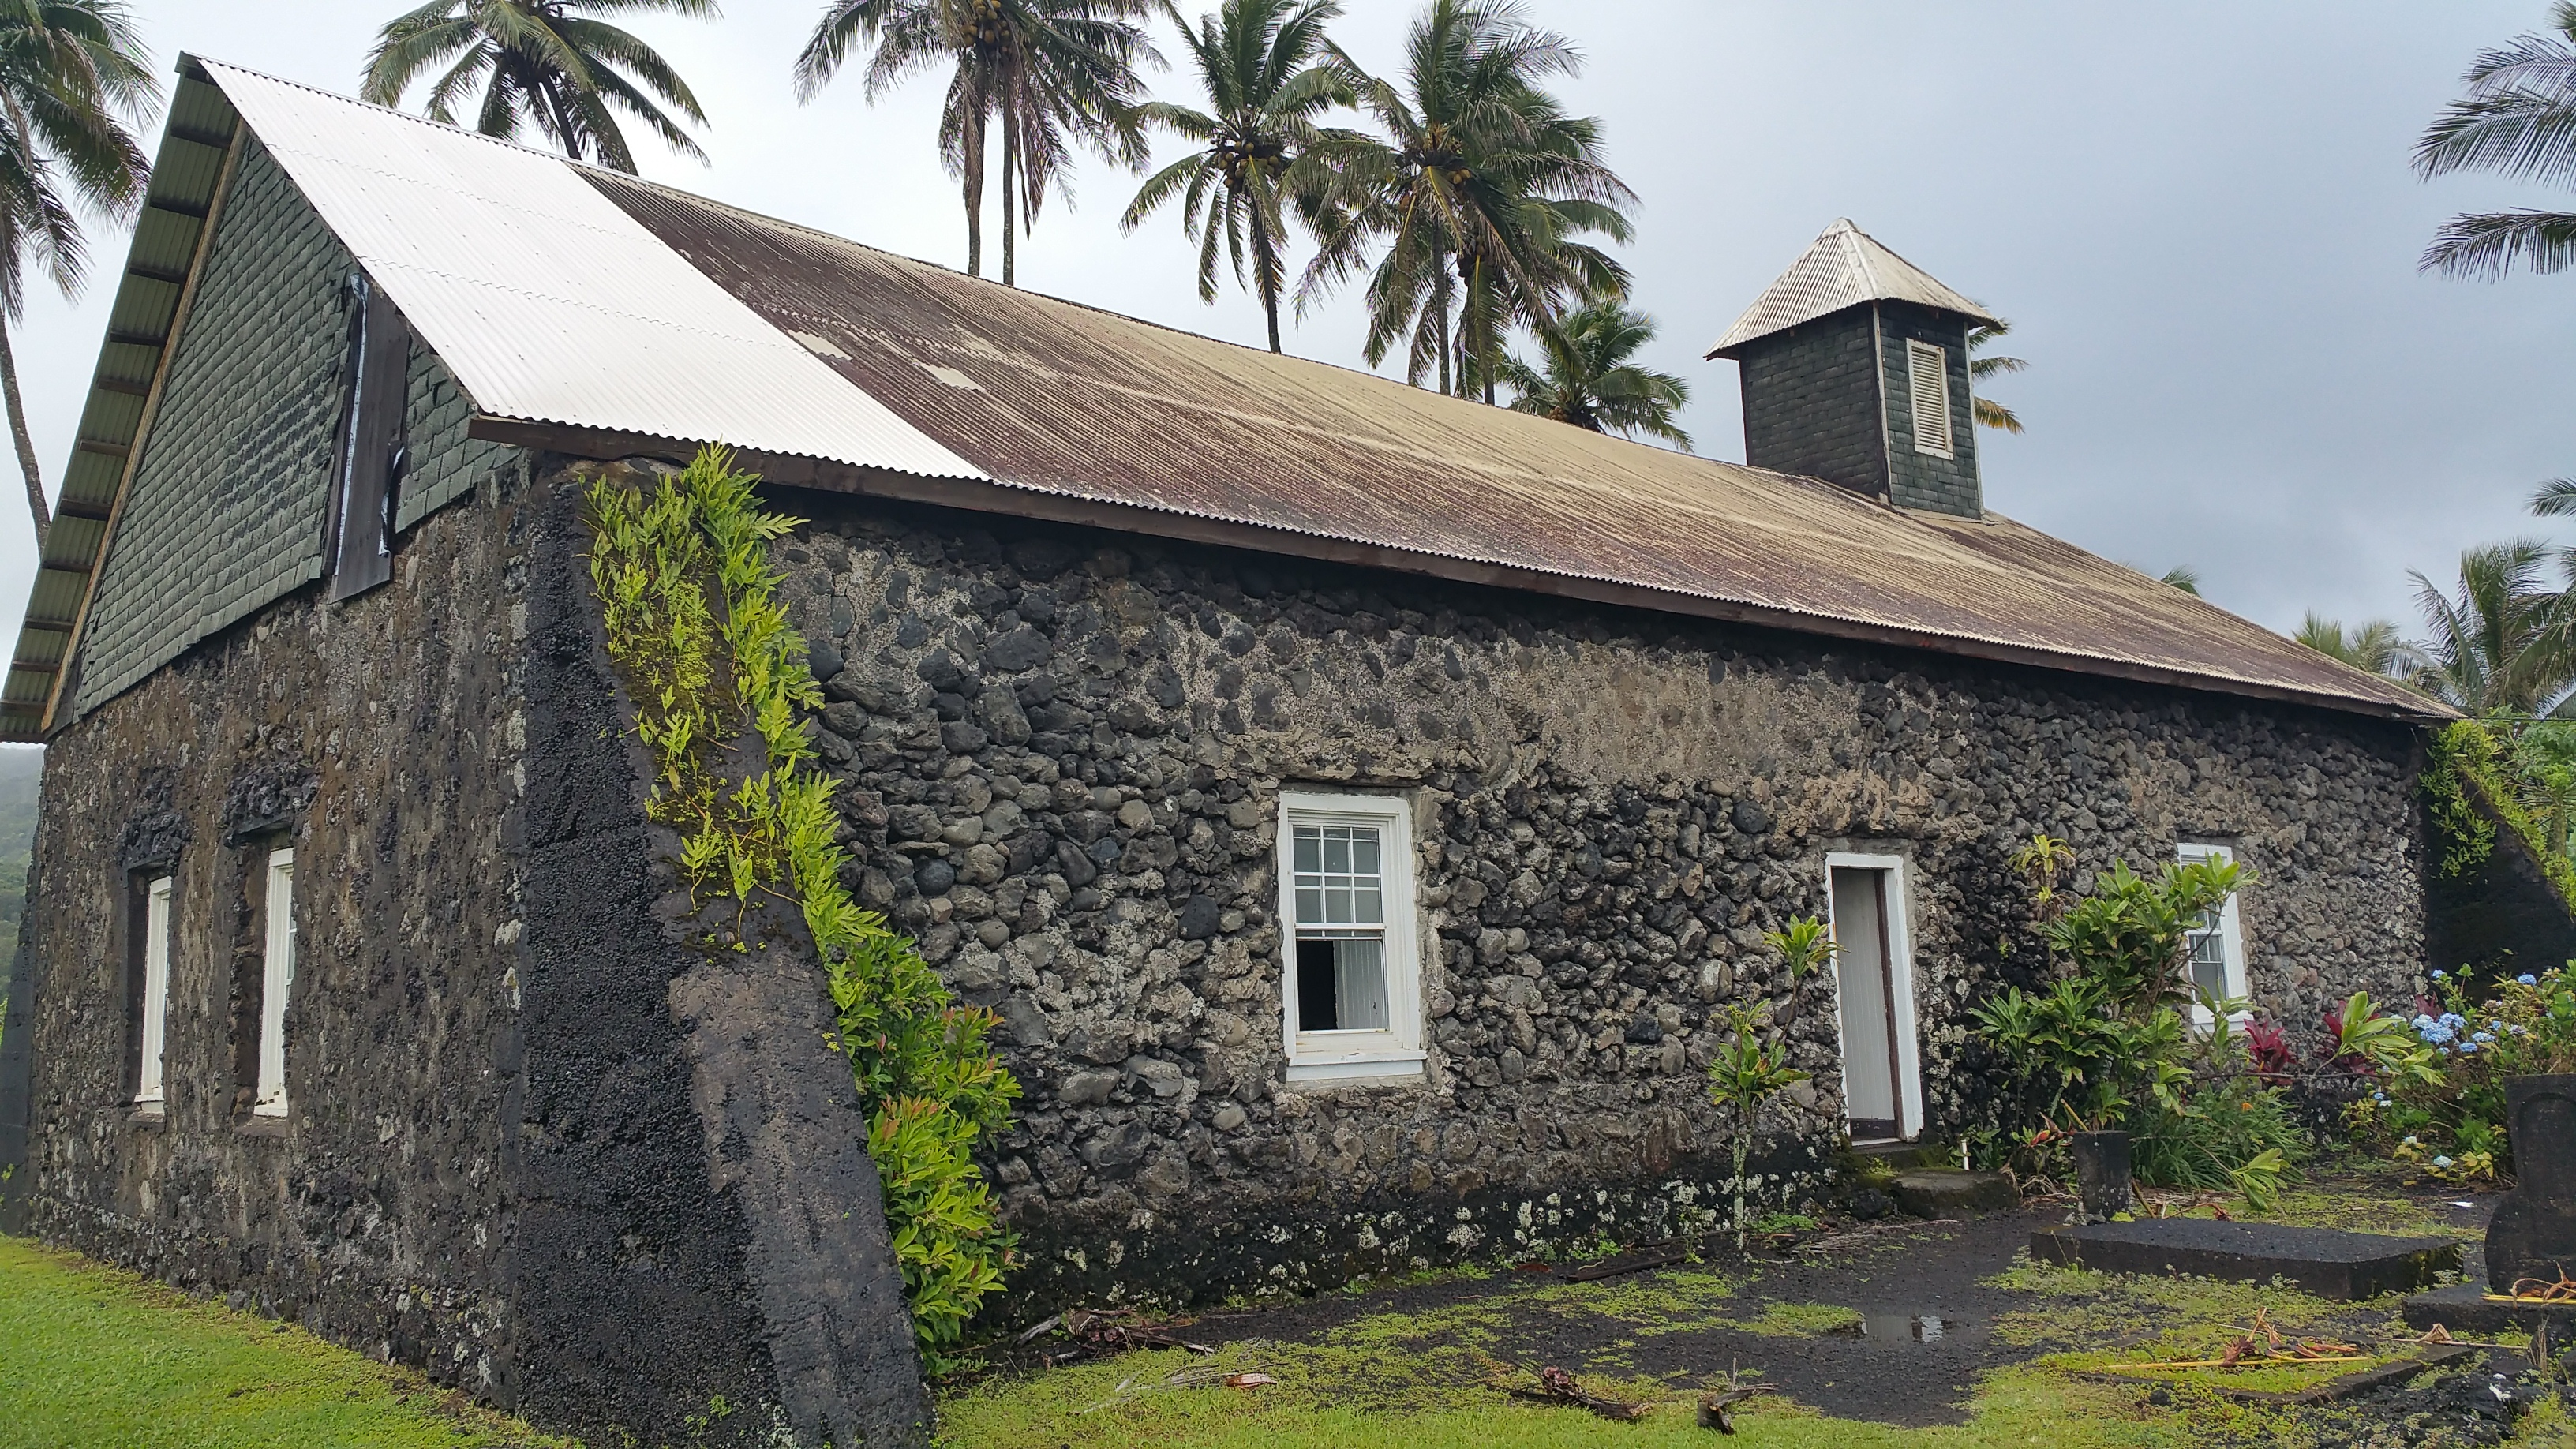 Keanae Church Maui.